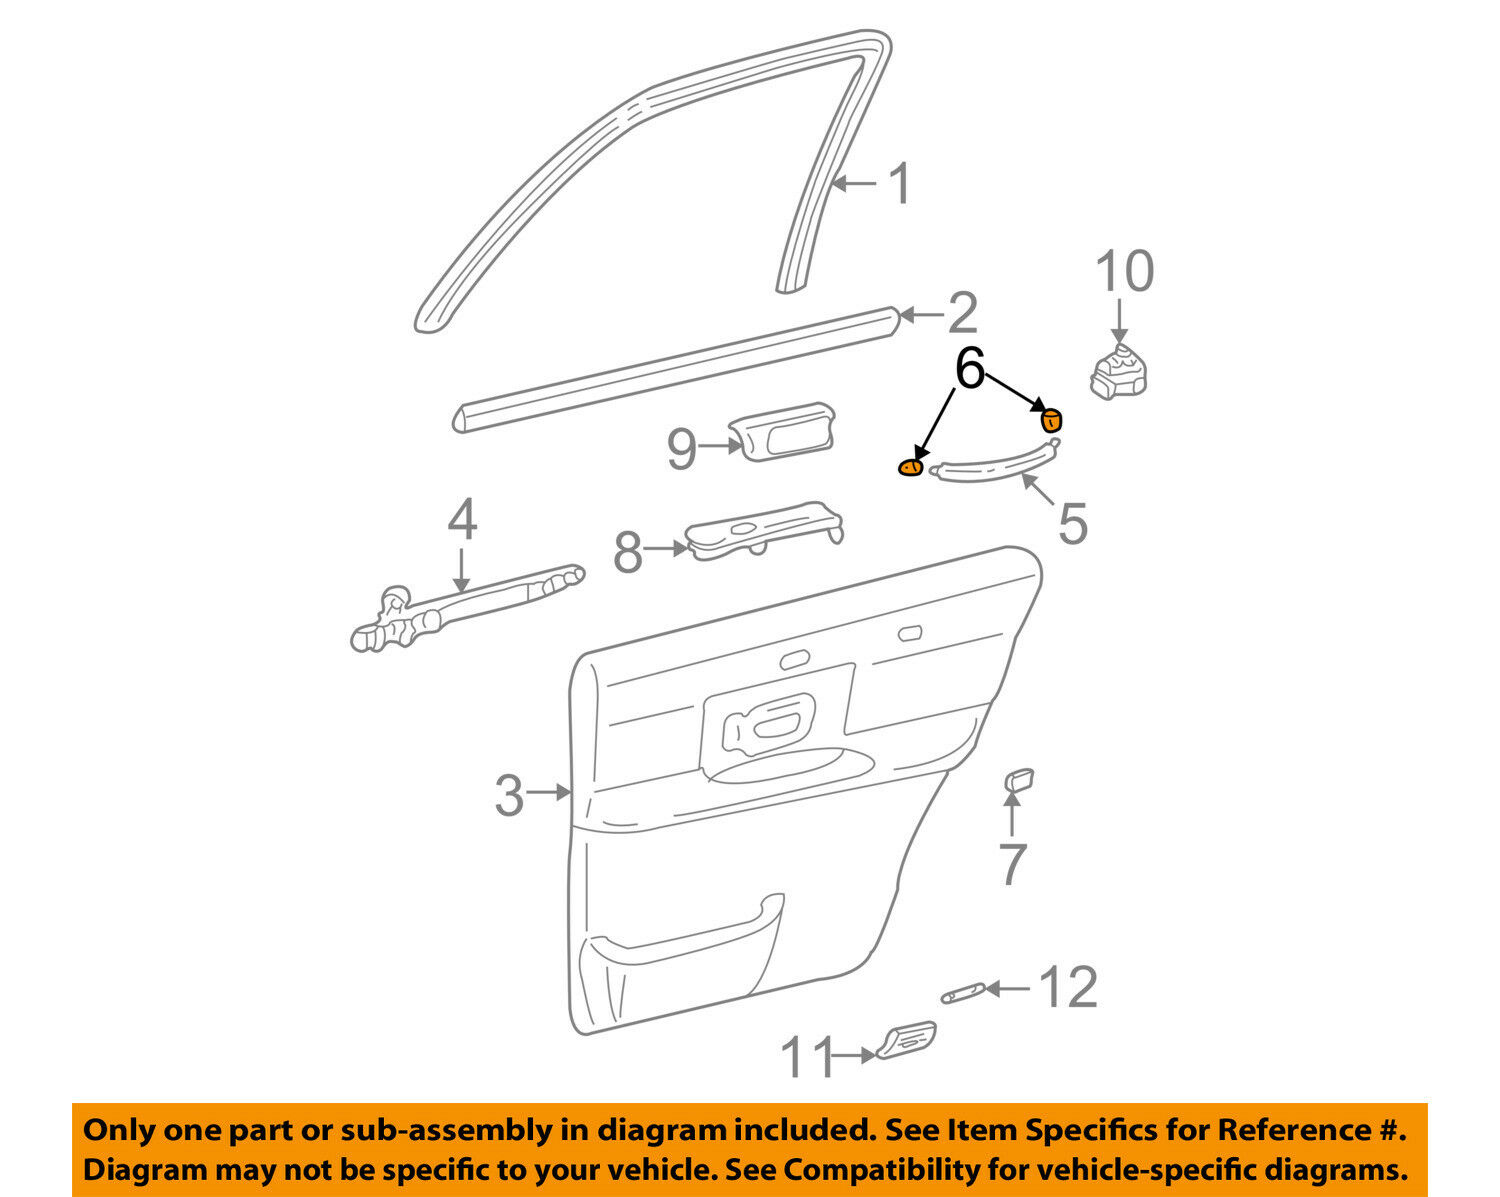 hight resolution of lincoln ford oem 03 11 town car interior rear door cover 3w1z5422670aac for sale